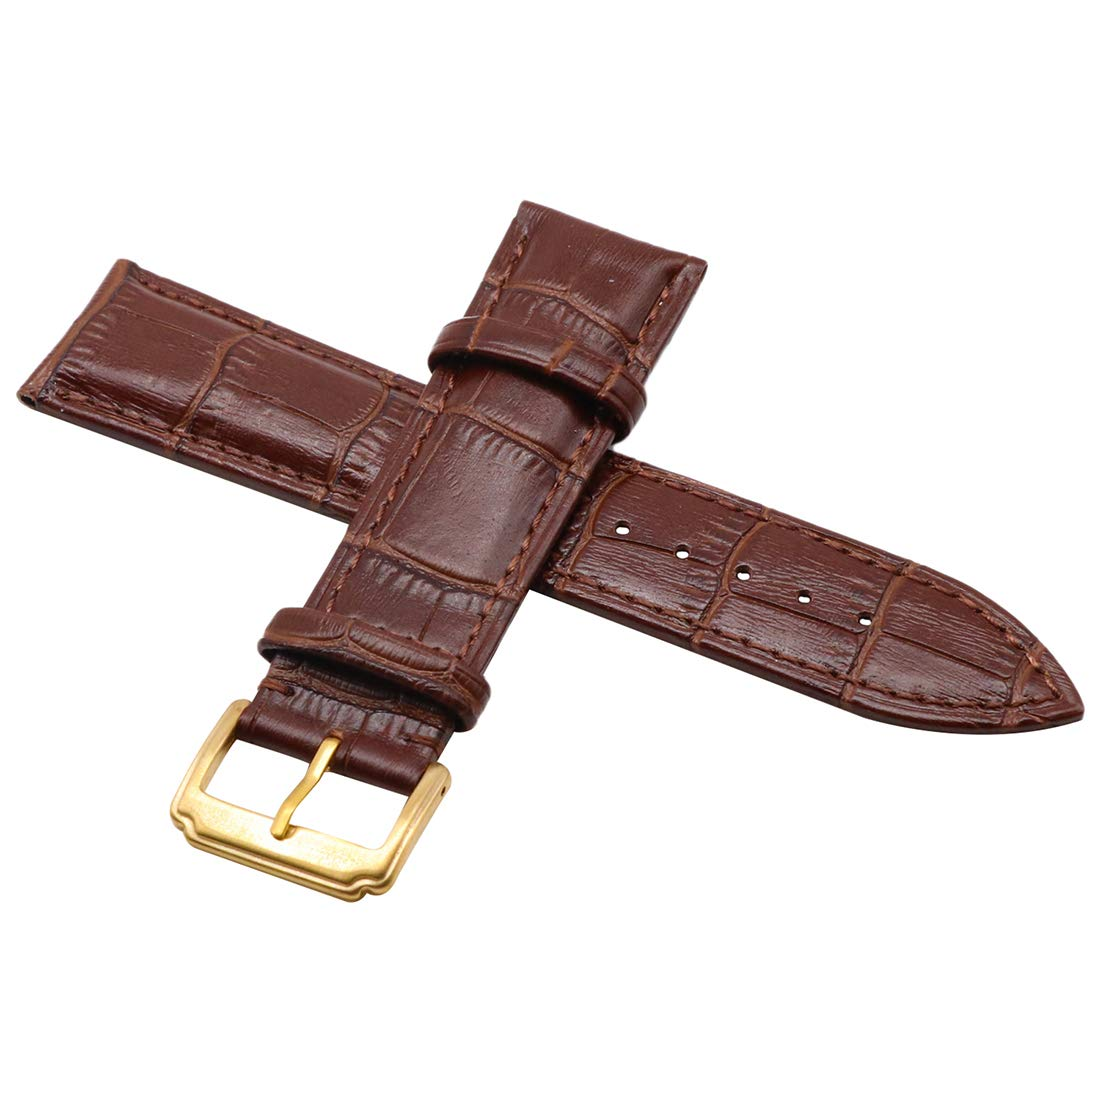 Leather Watch Band Black 12-24mm Watch Strap for Mens Brwon Watch Band Leather for Womens Watch Band Replacemet